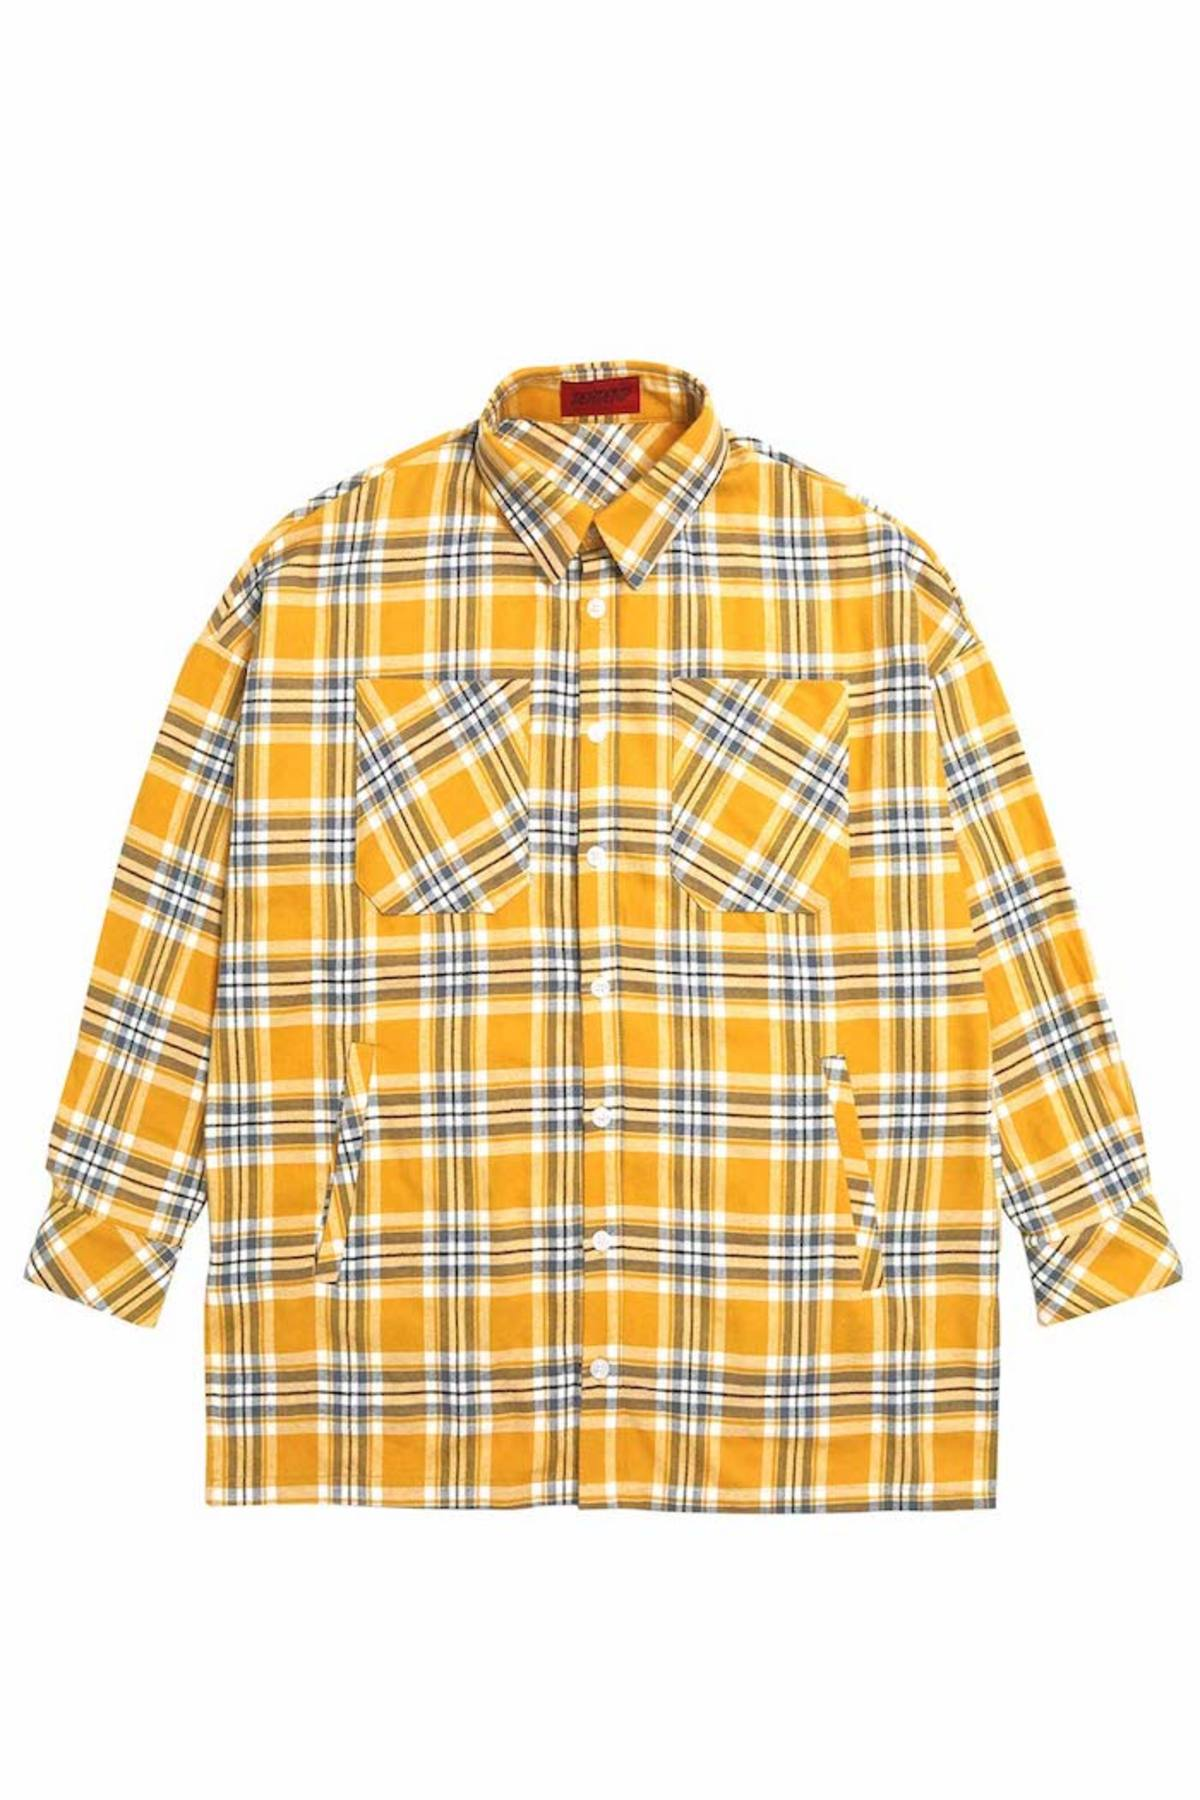 YELLOW FLANNEL POCKET SHIRTS V2